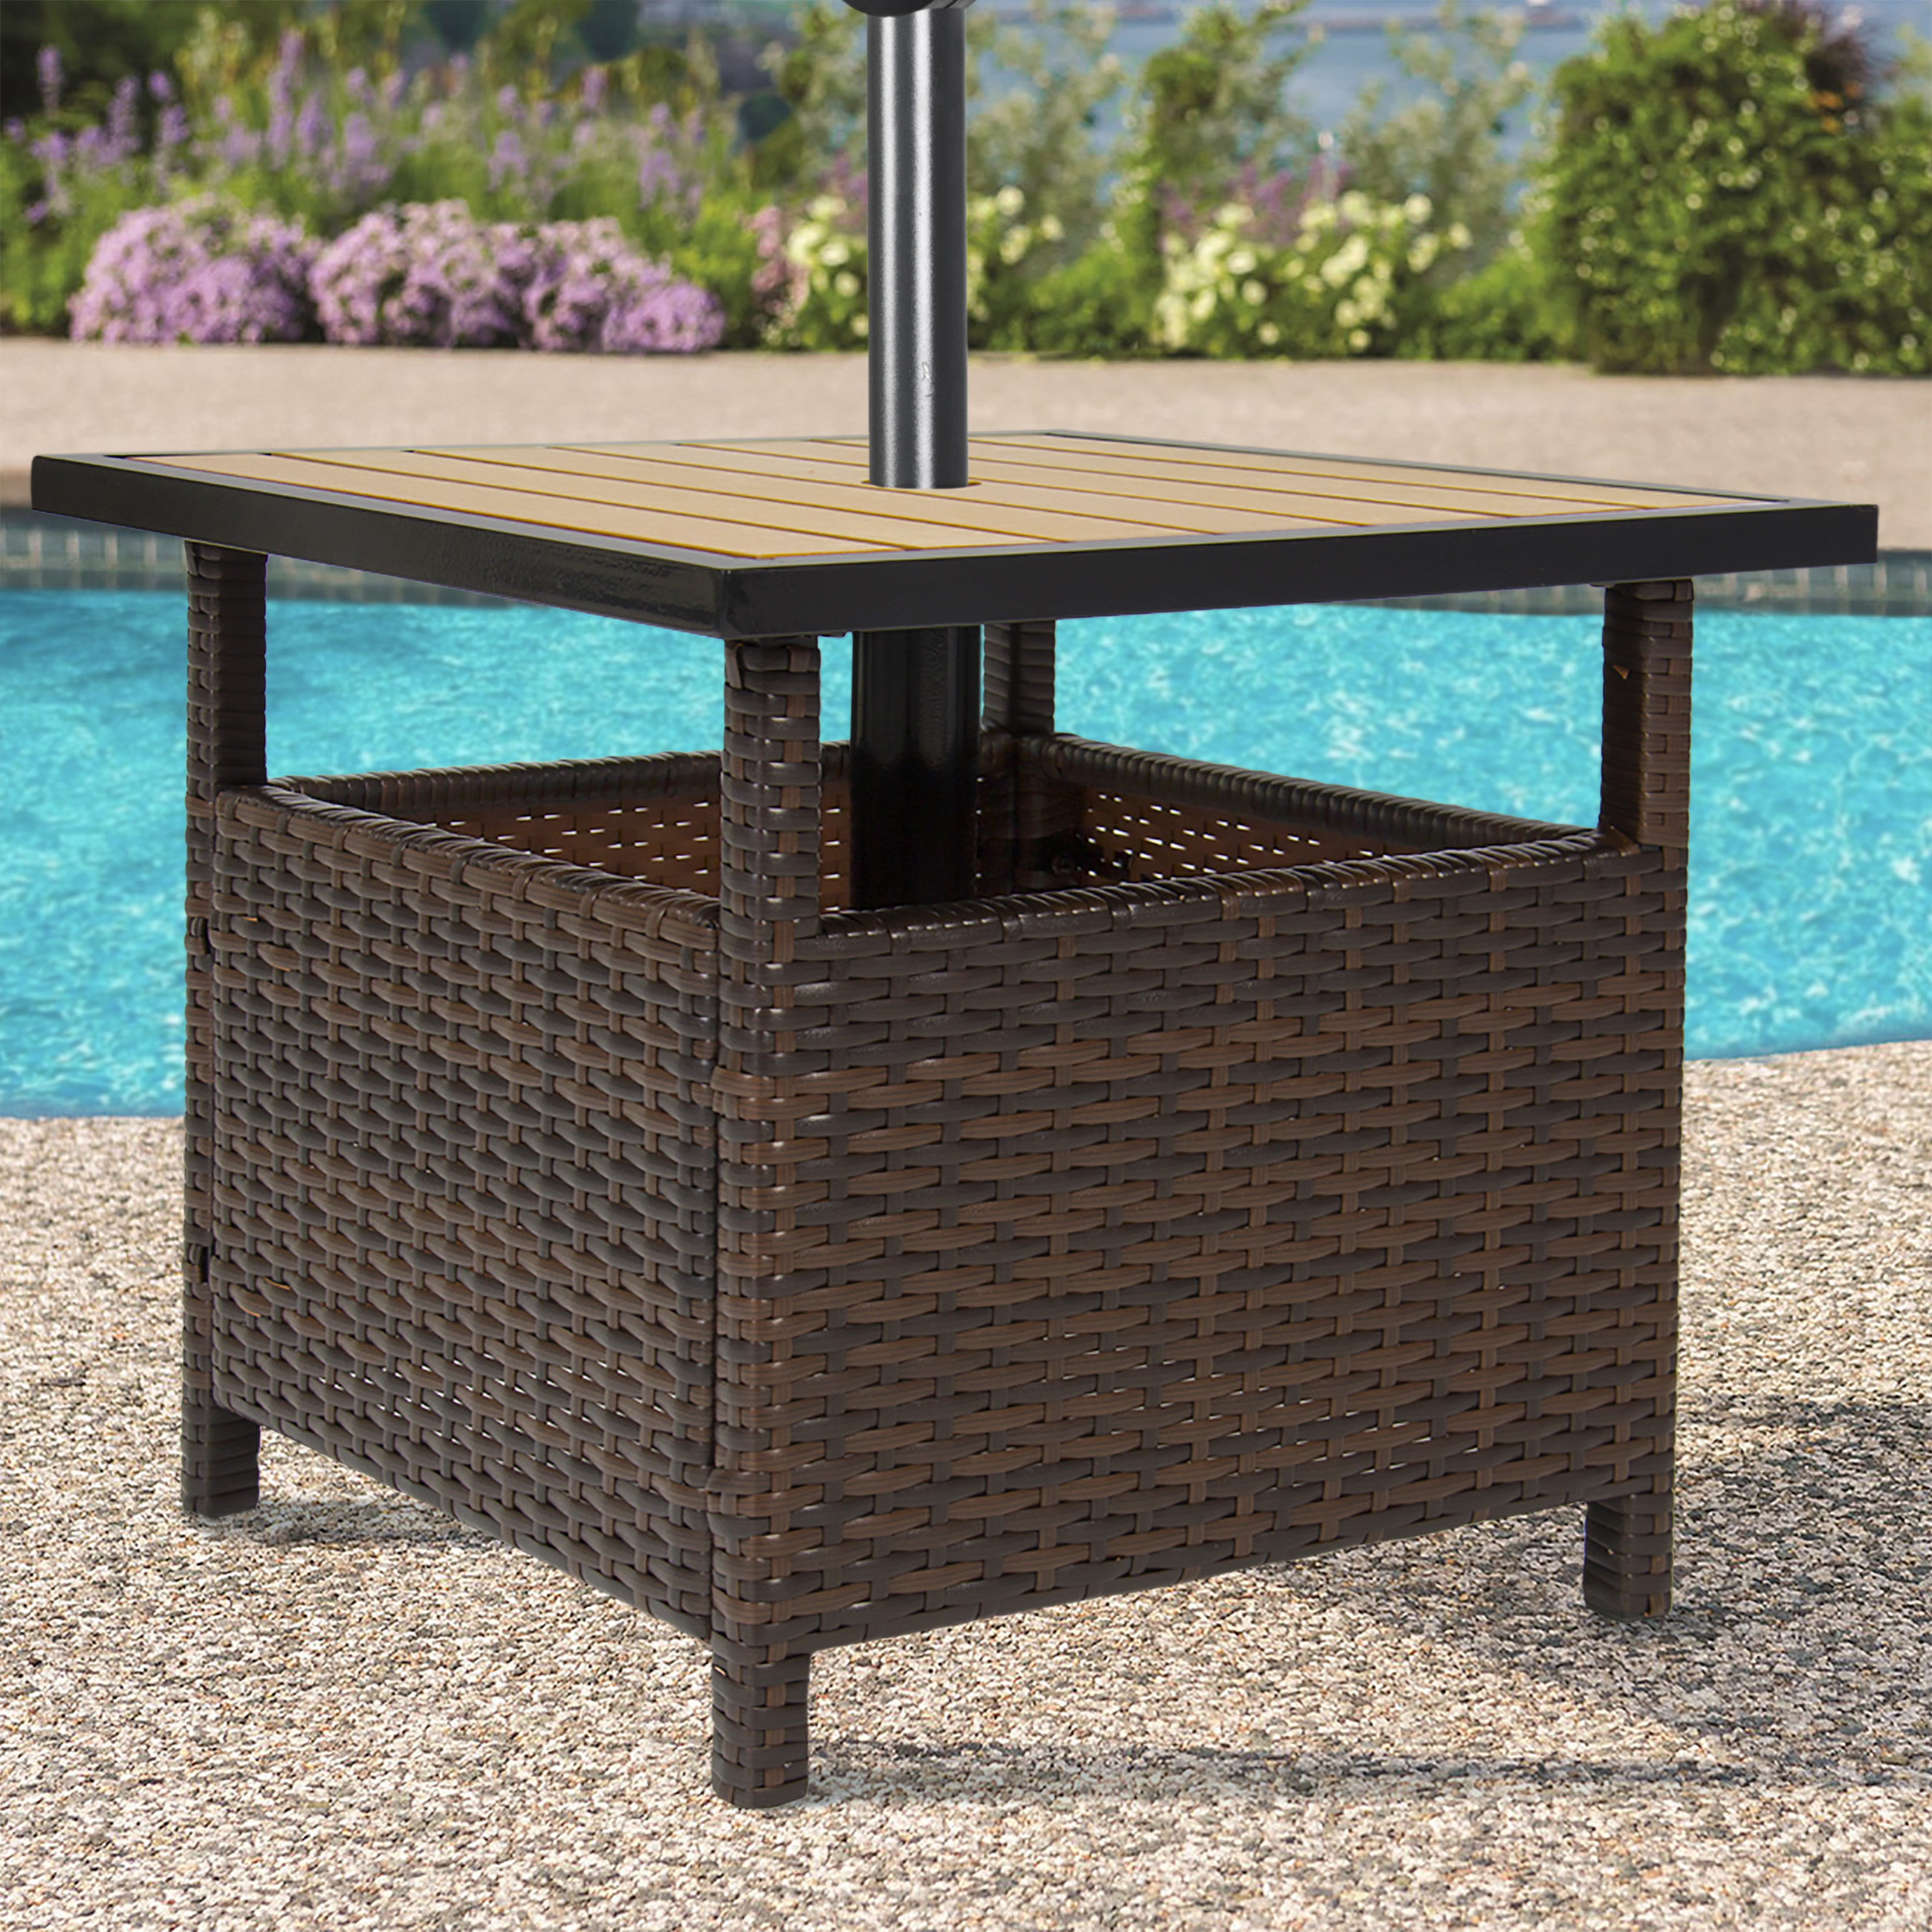 Attractive Best Choice Products Outdoor Furniture Wicker Rattan Patio Umbrella Stand  Table For Garden, Pool Deck